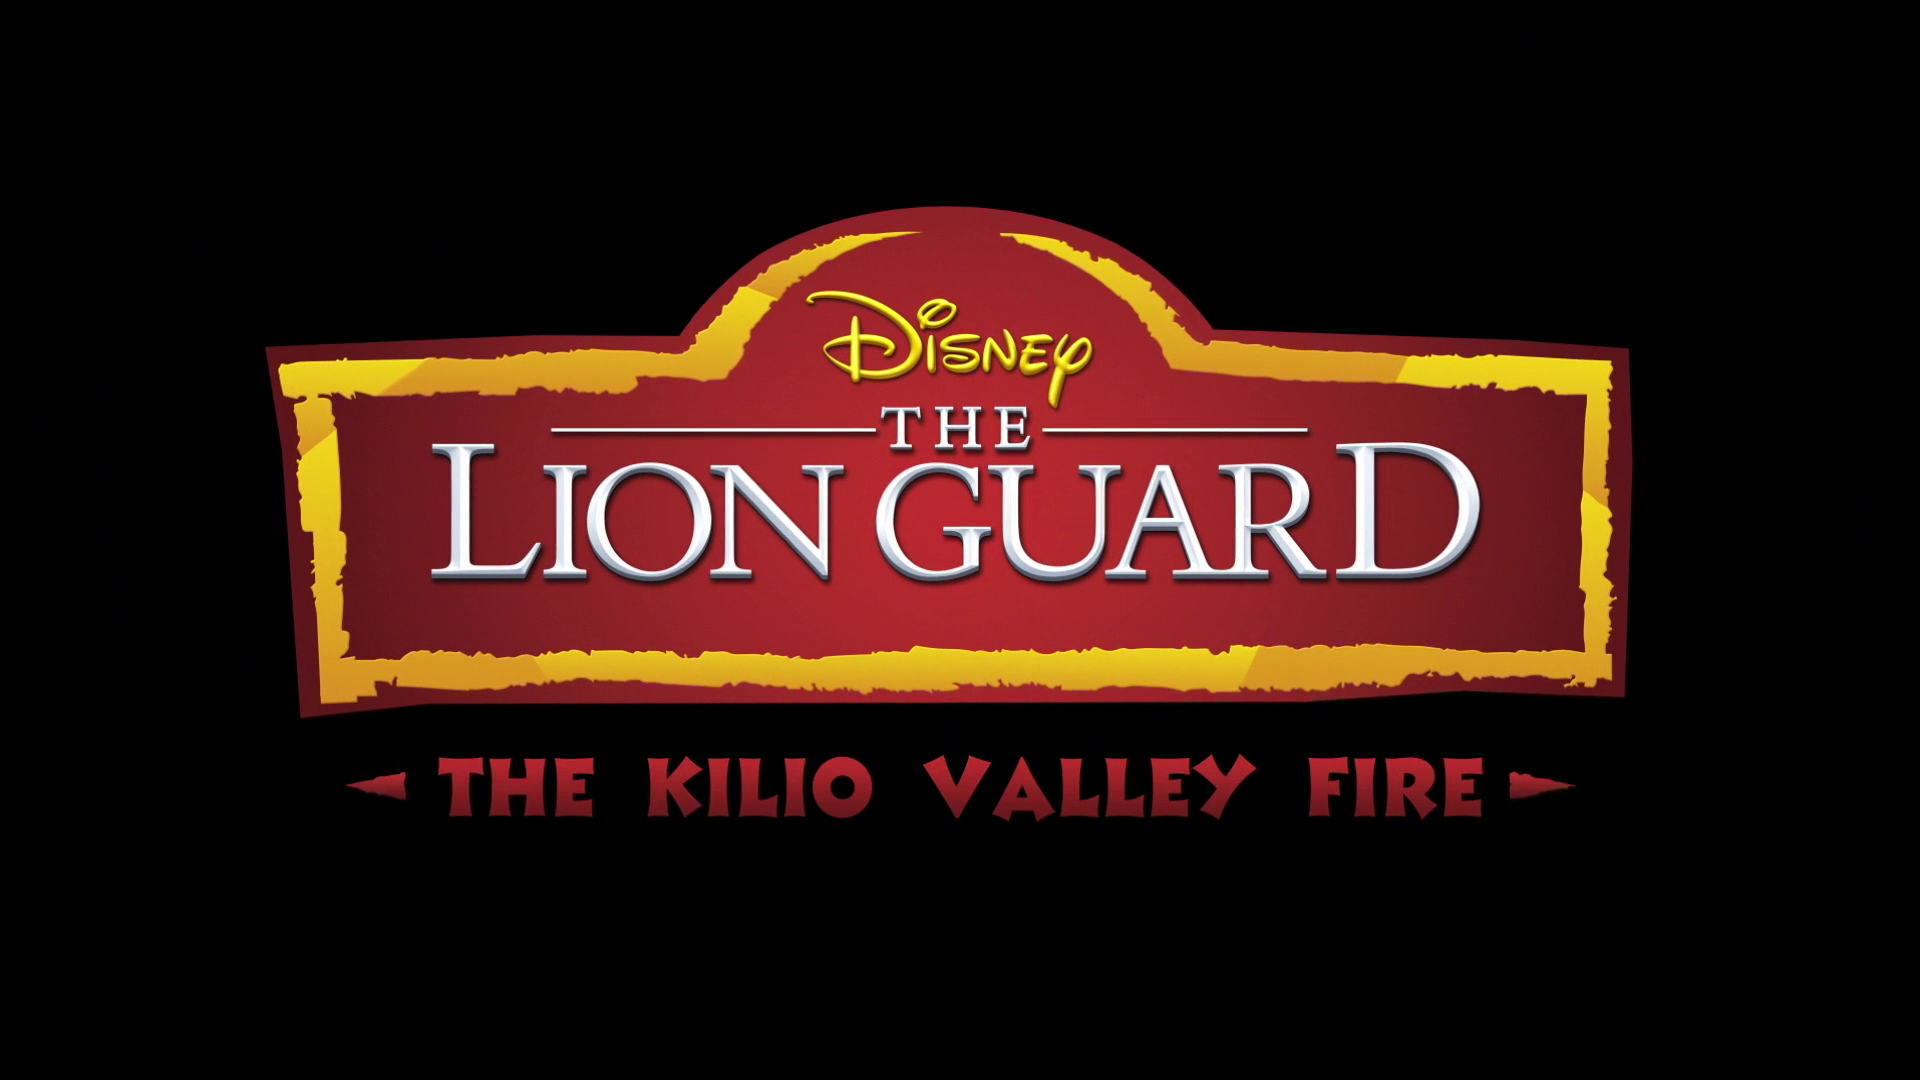 The Kilio Valley Fire